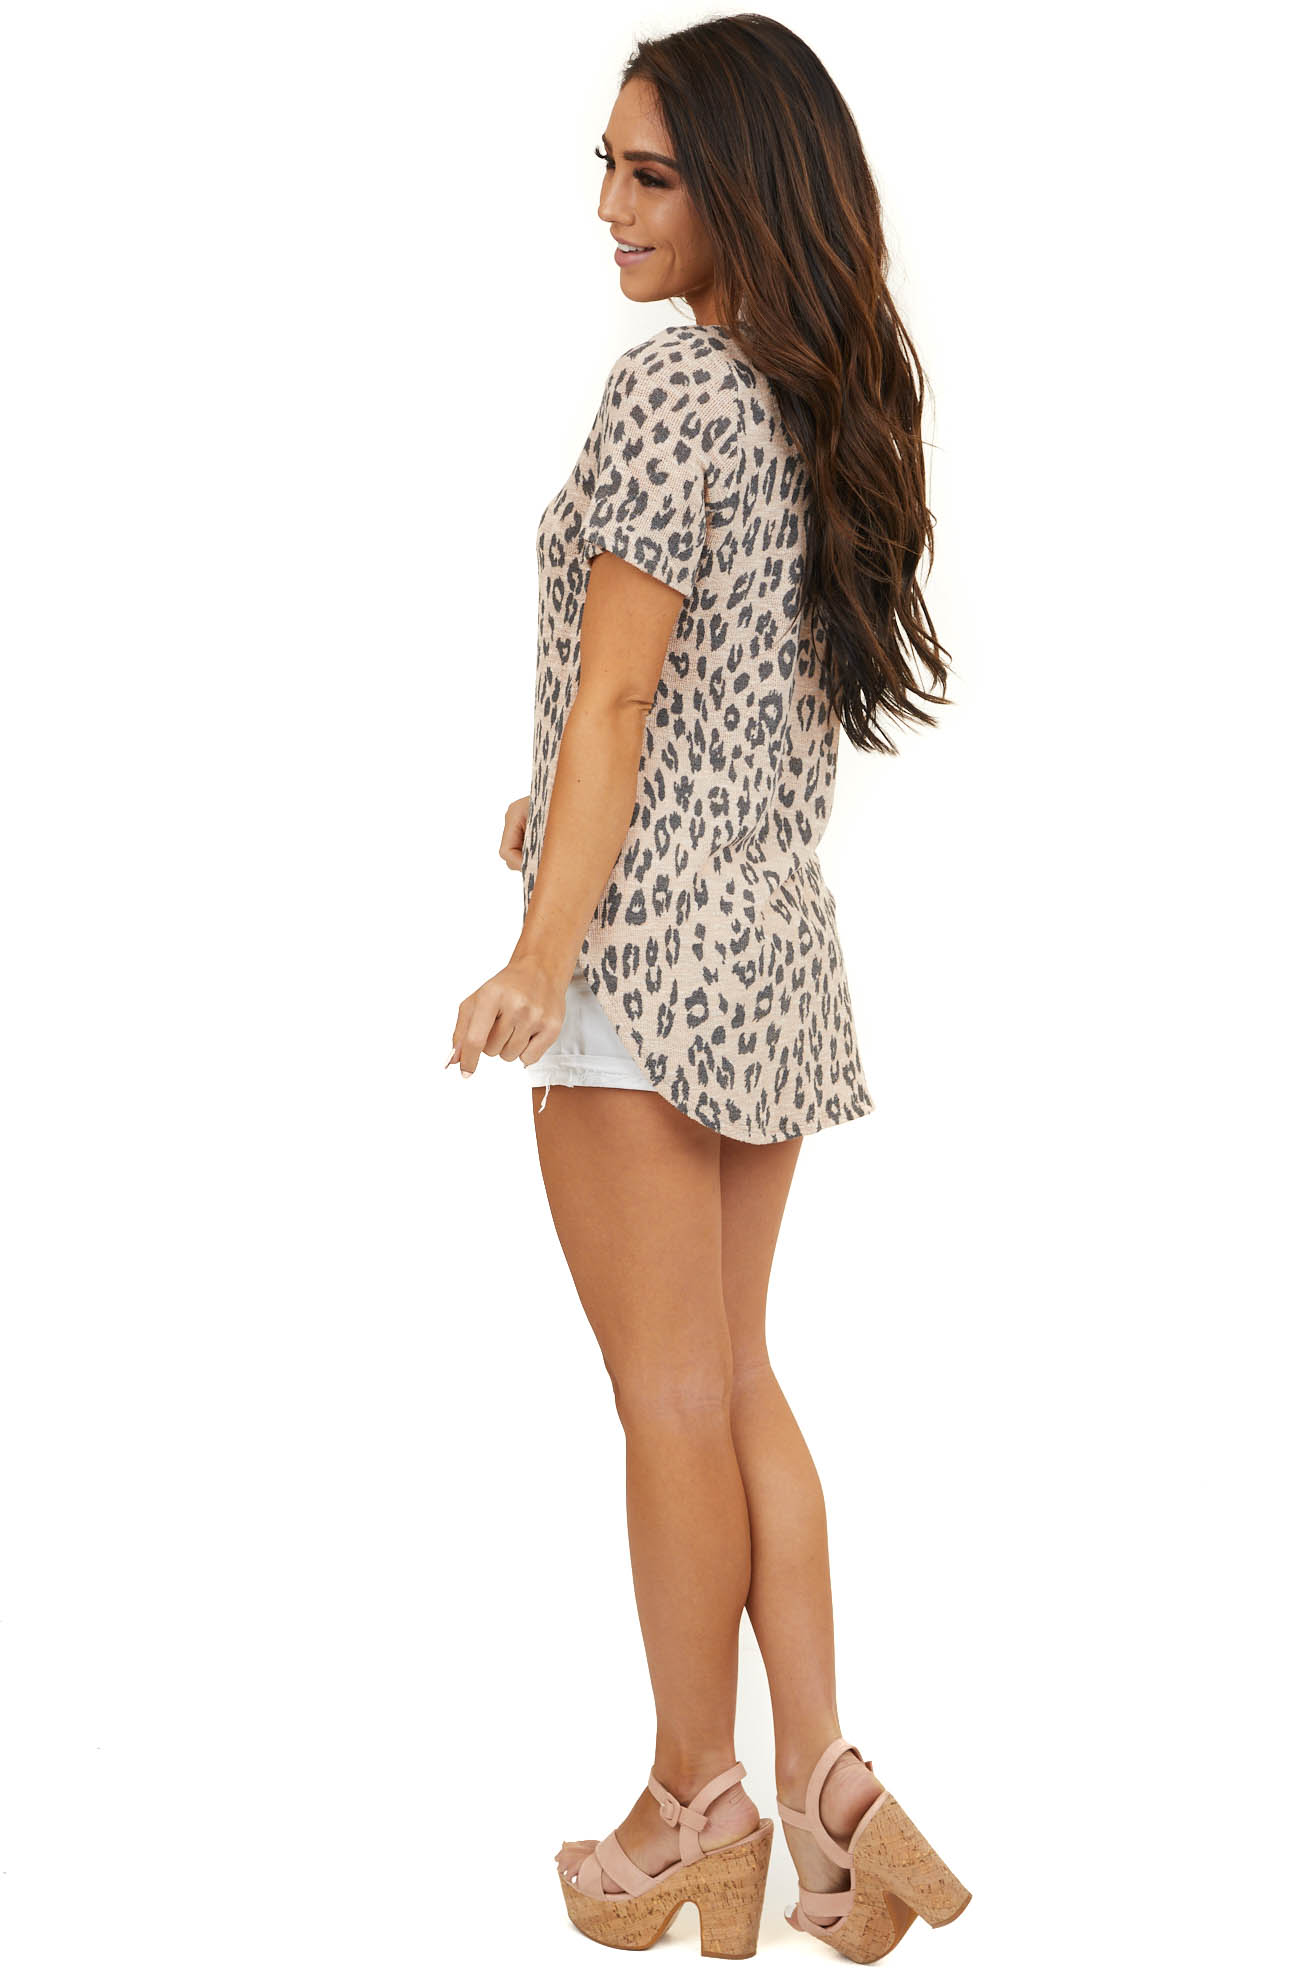 Light Apricot and Charcoal Leopard Print Short Sleeve Top